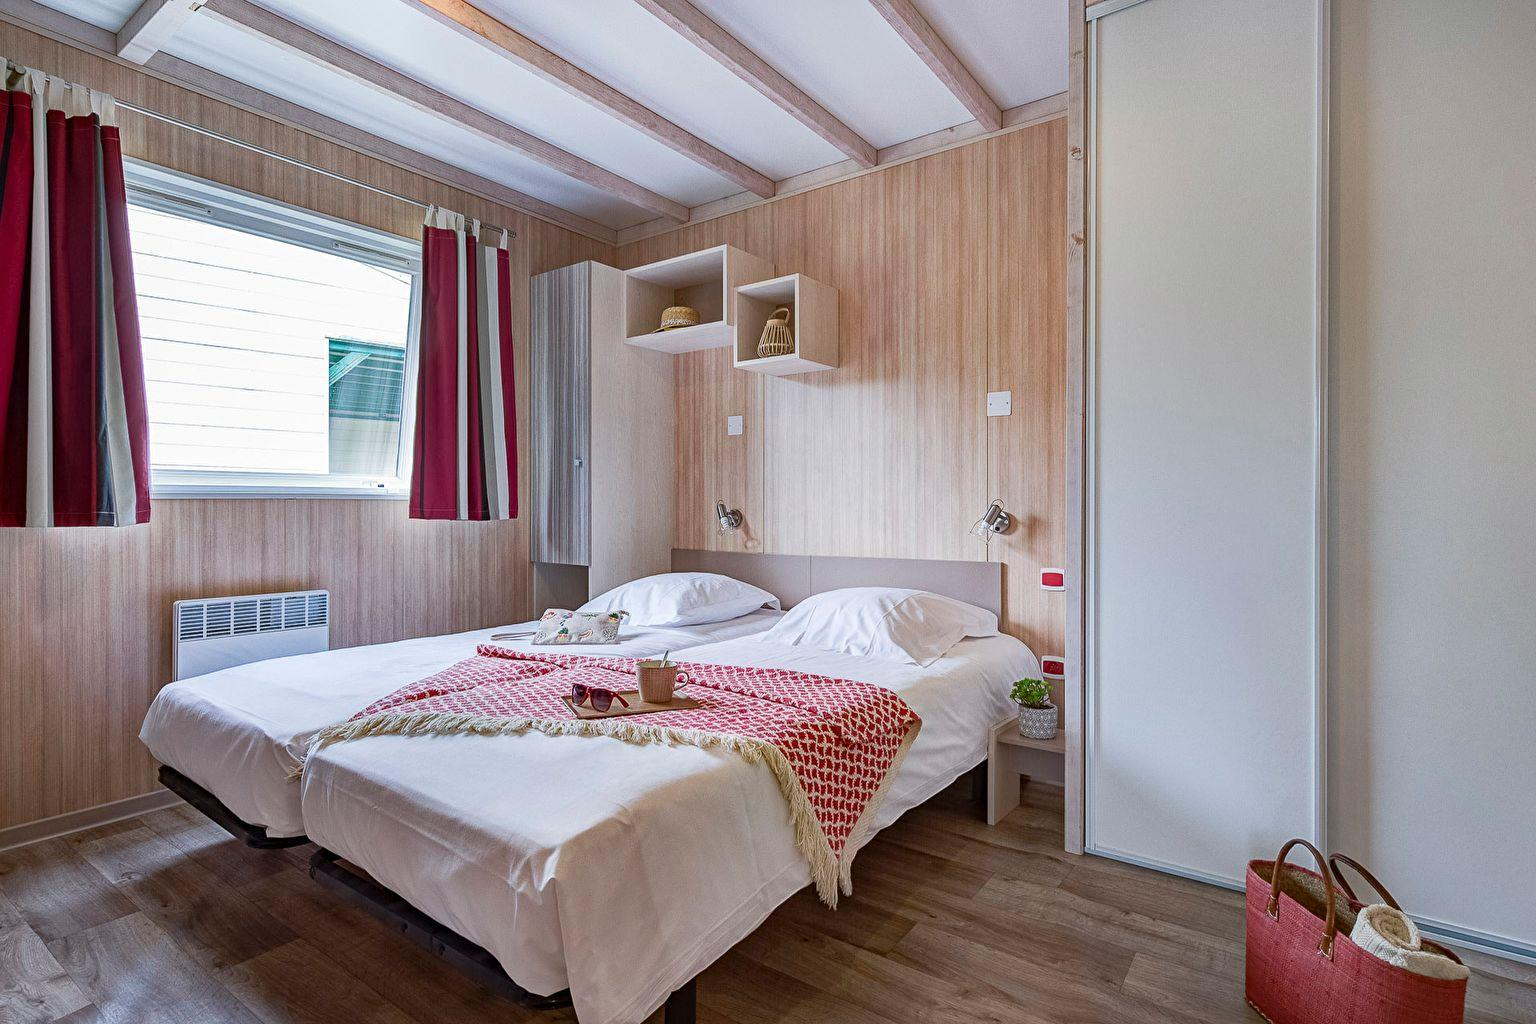 Location - Chalet 2 Chambres Pmr *** - Camping Sandaya Les Alicourts Resort